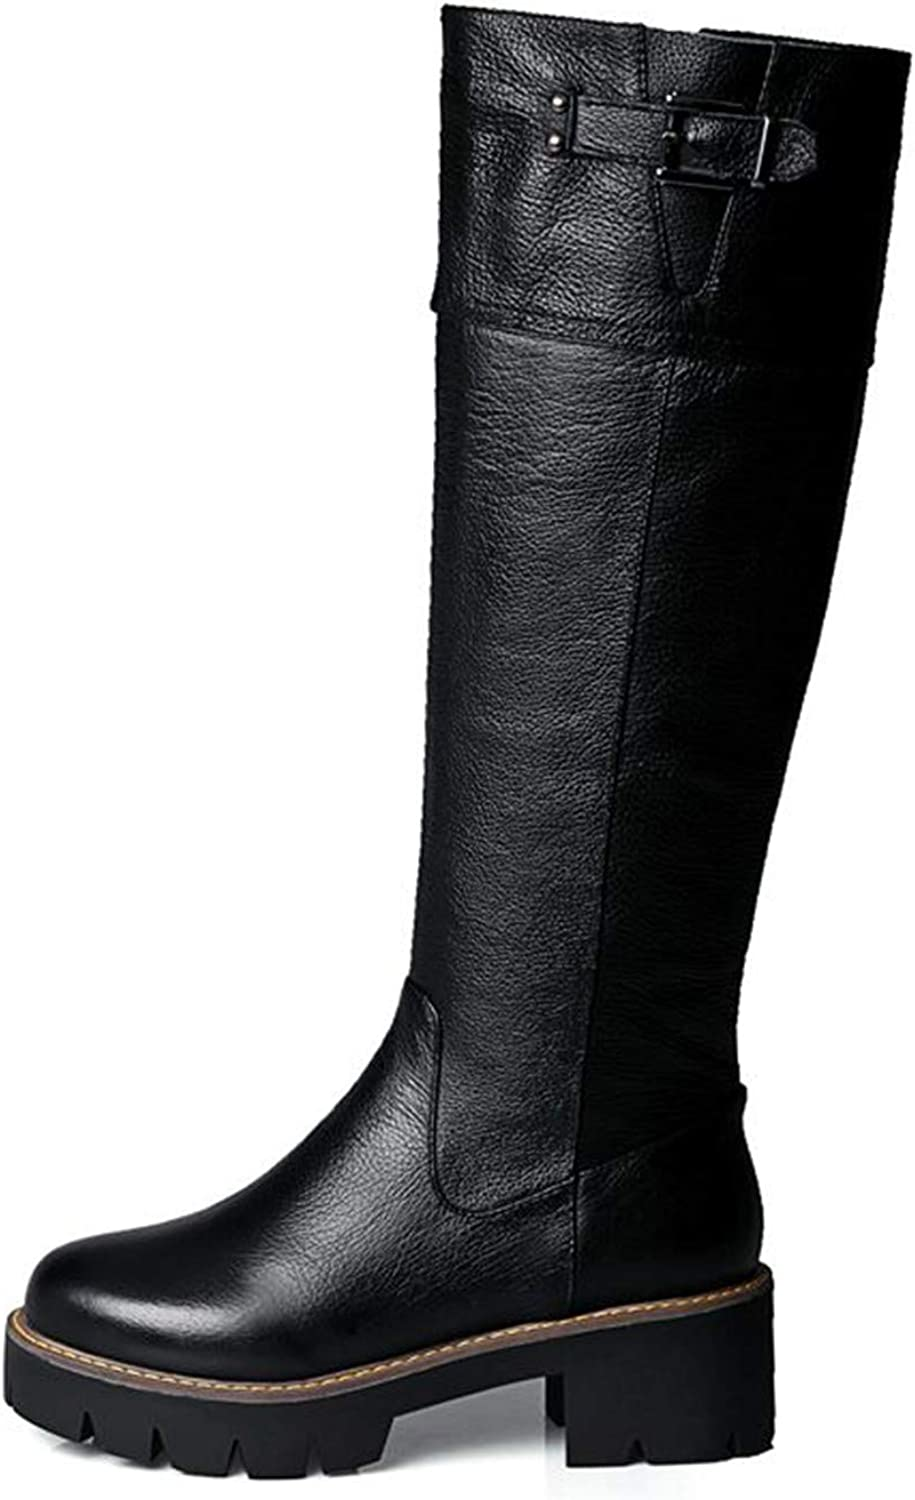 Pu+Genuine Leather Riding Boots Square Med Heel Fur Platform Winter Knee High Boots Women Motorcycle Boots